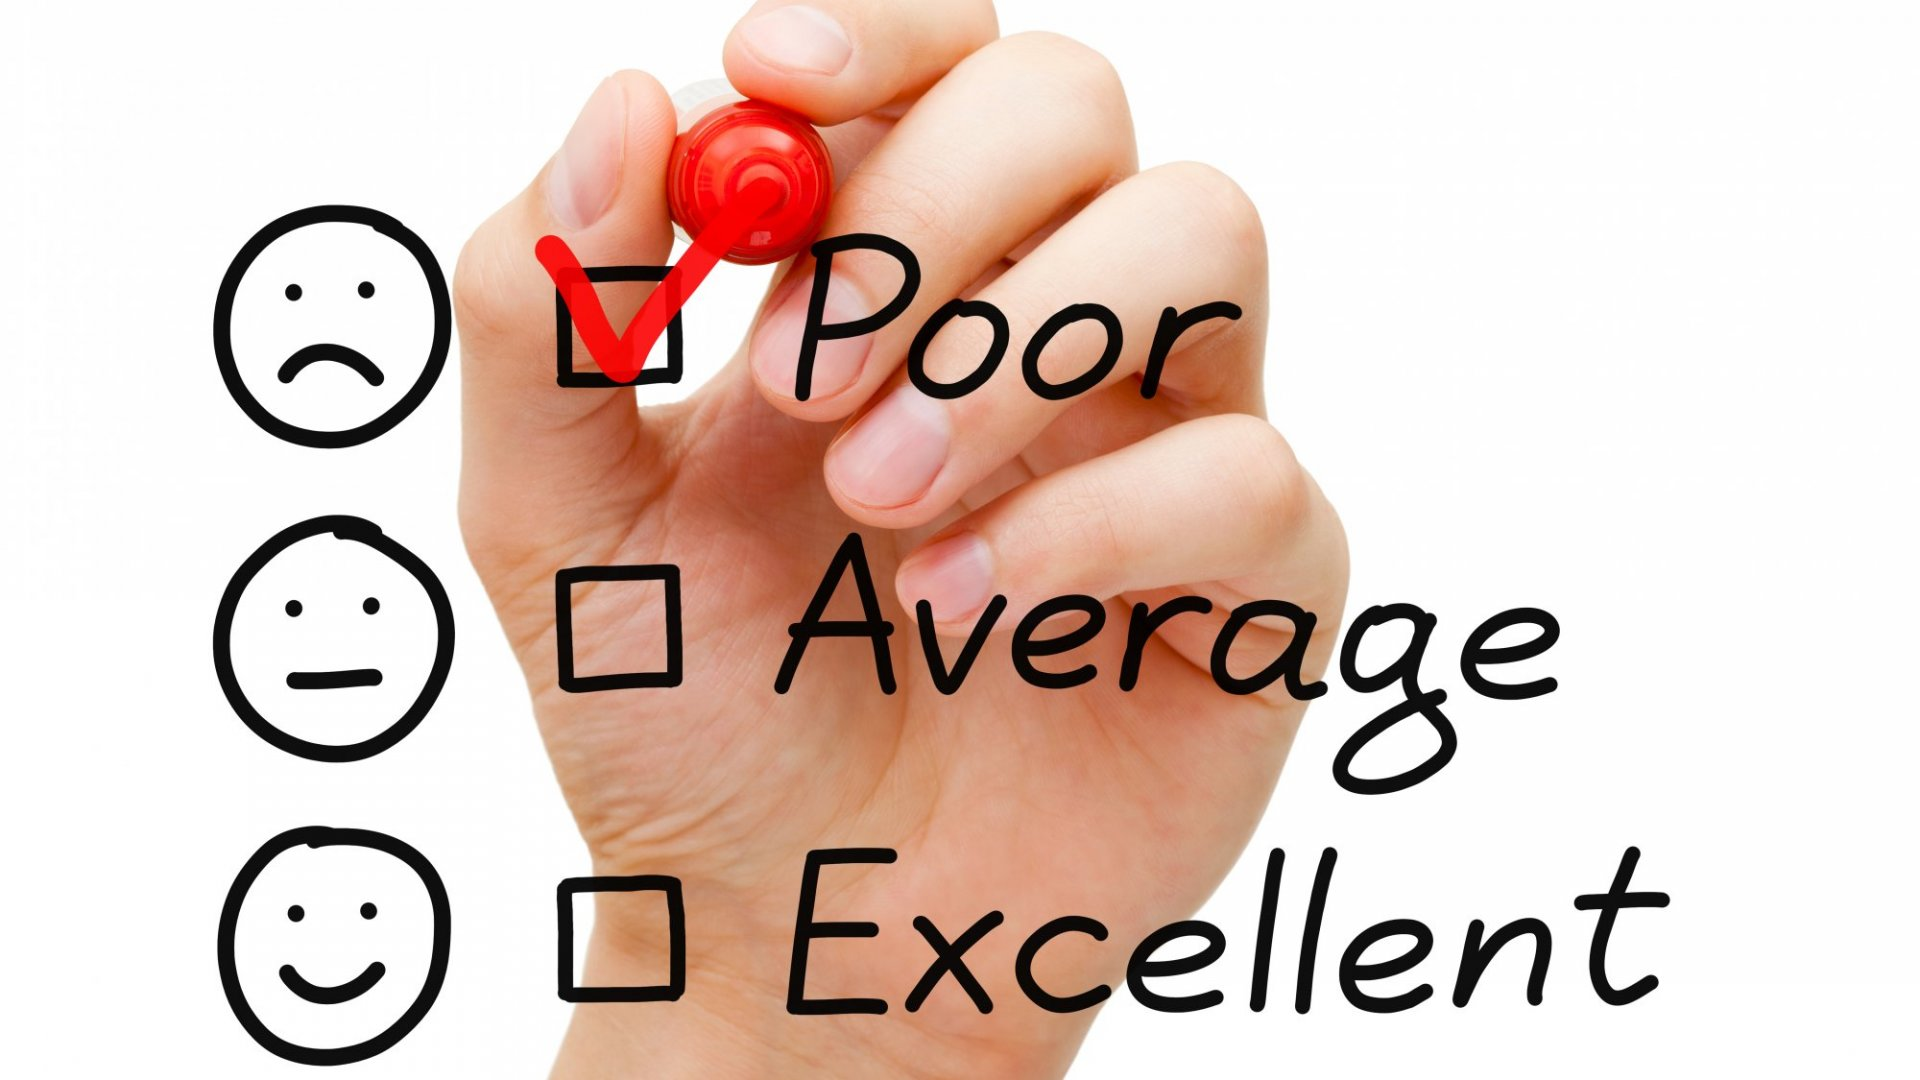 I'm a Great Performer, So Why Does My Rating Stink?